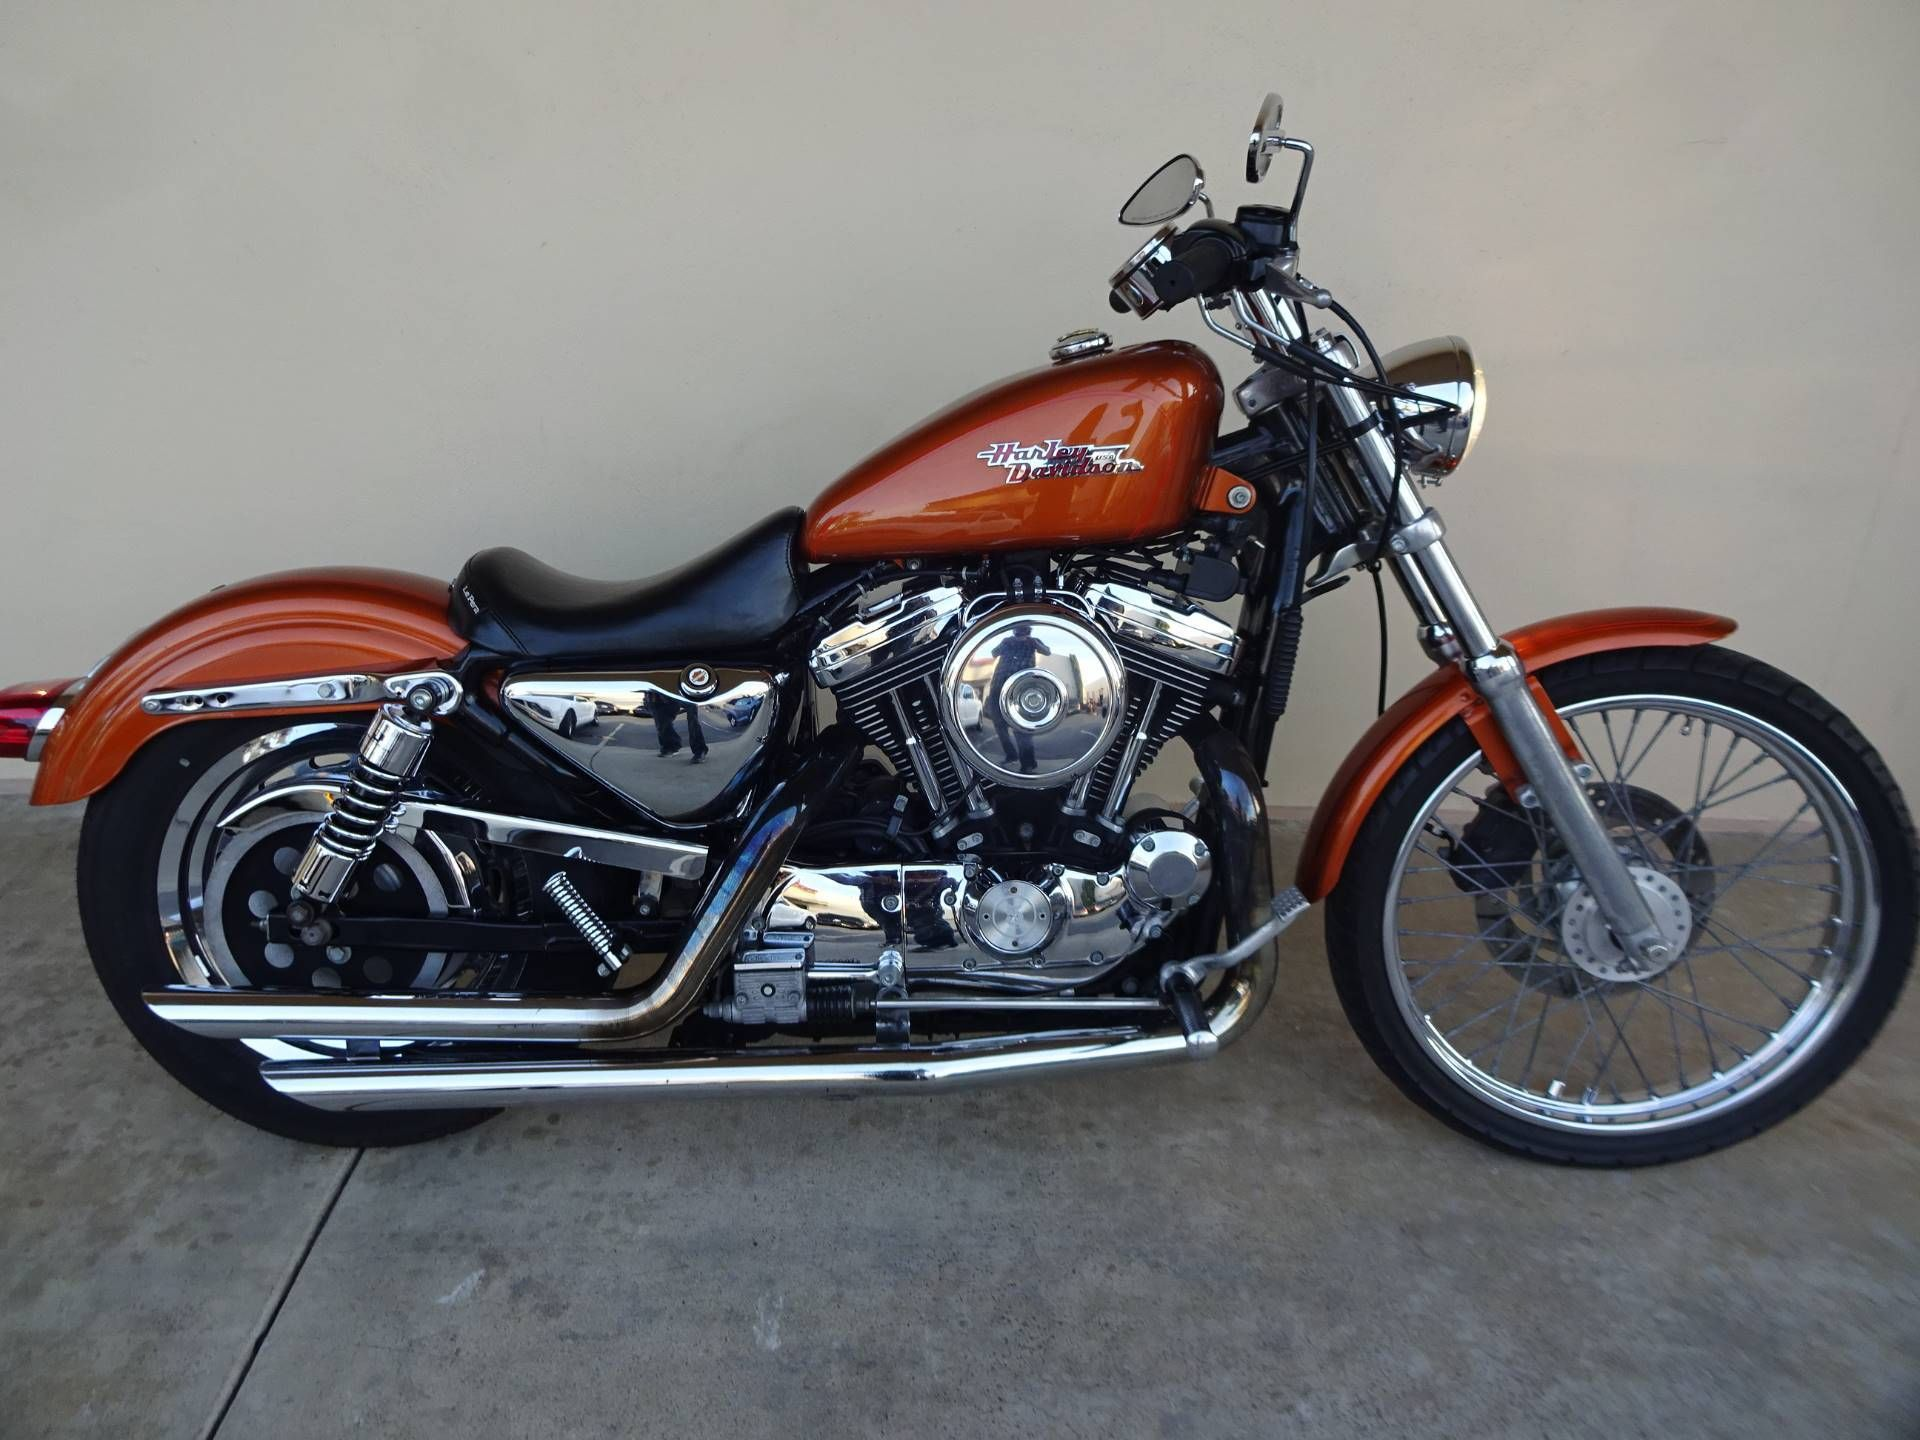 2000 harley davidson sportster 1200 hobbiesxstyle. Black Bedroom Furniture Sets. Home Design Ideas